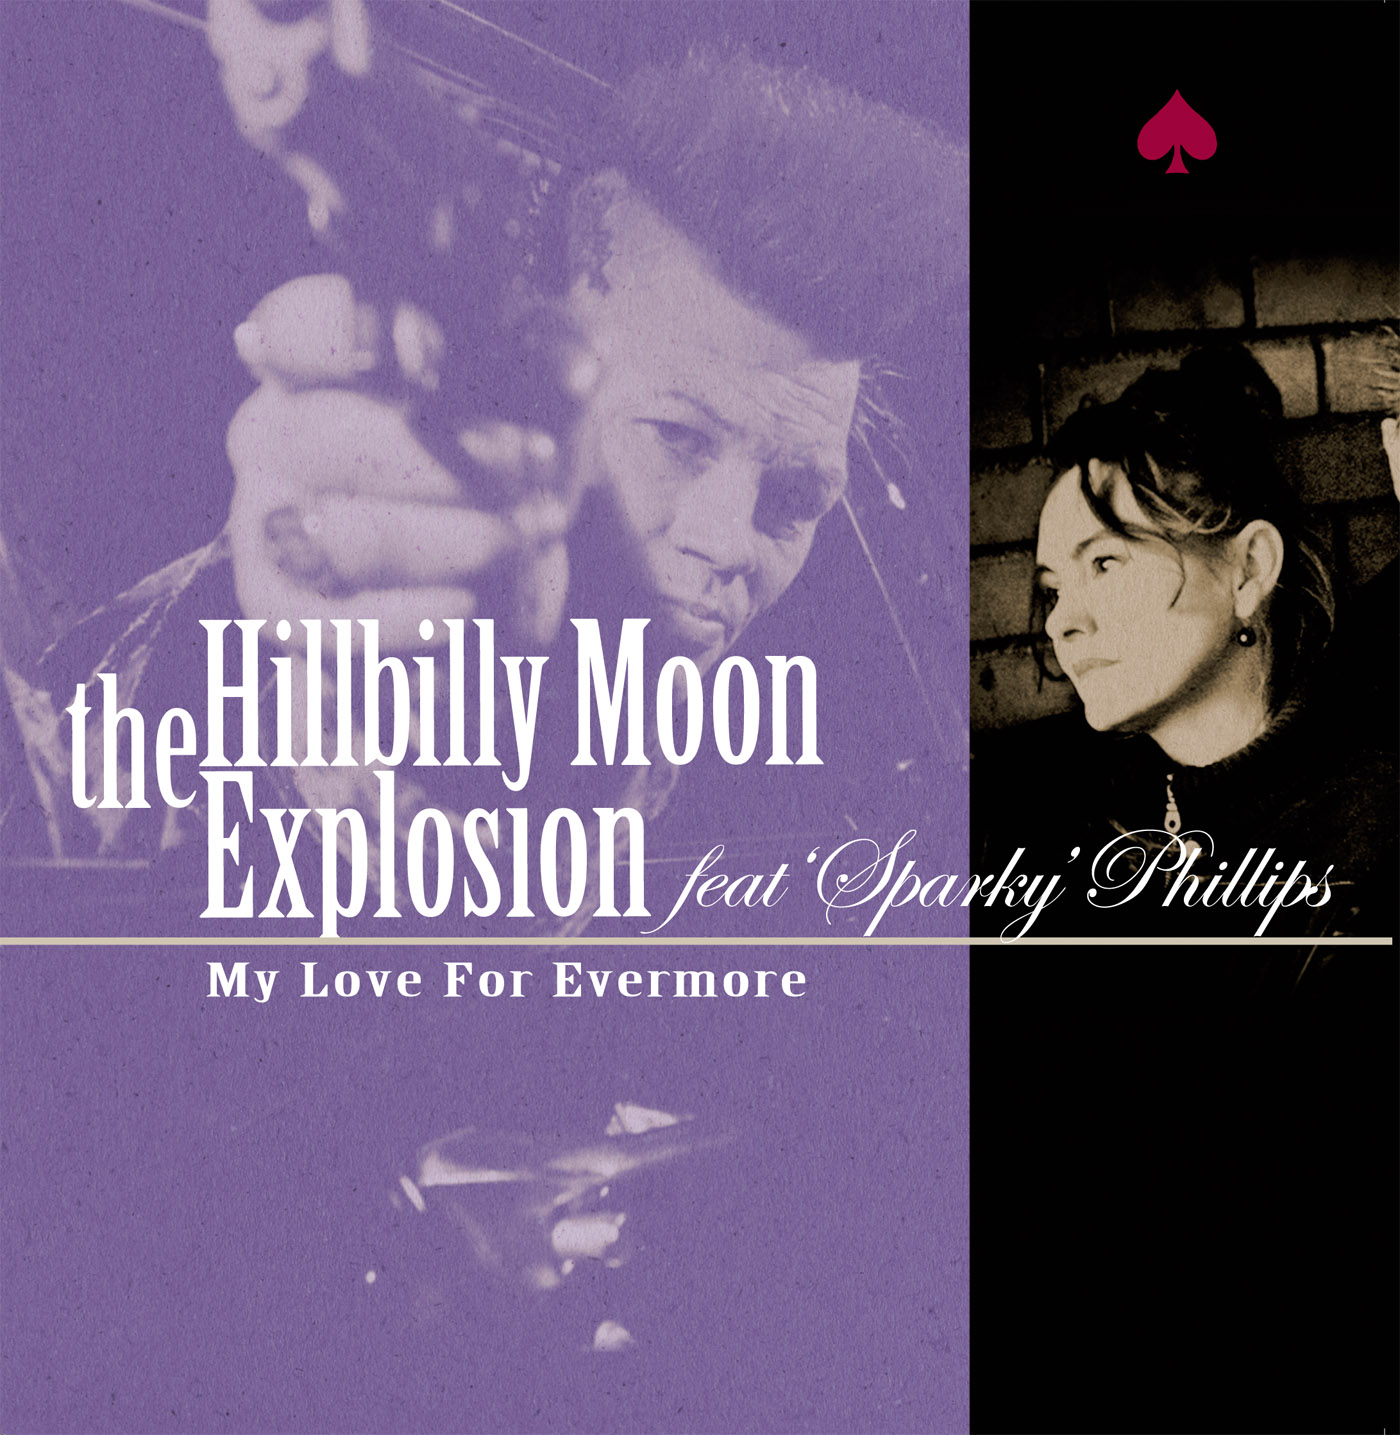 Hillbilly Moon Explosion My Love purple